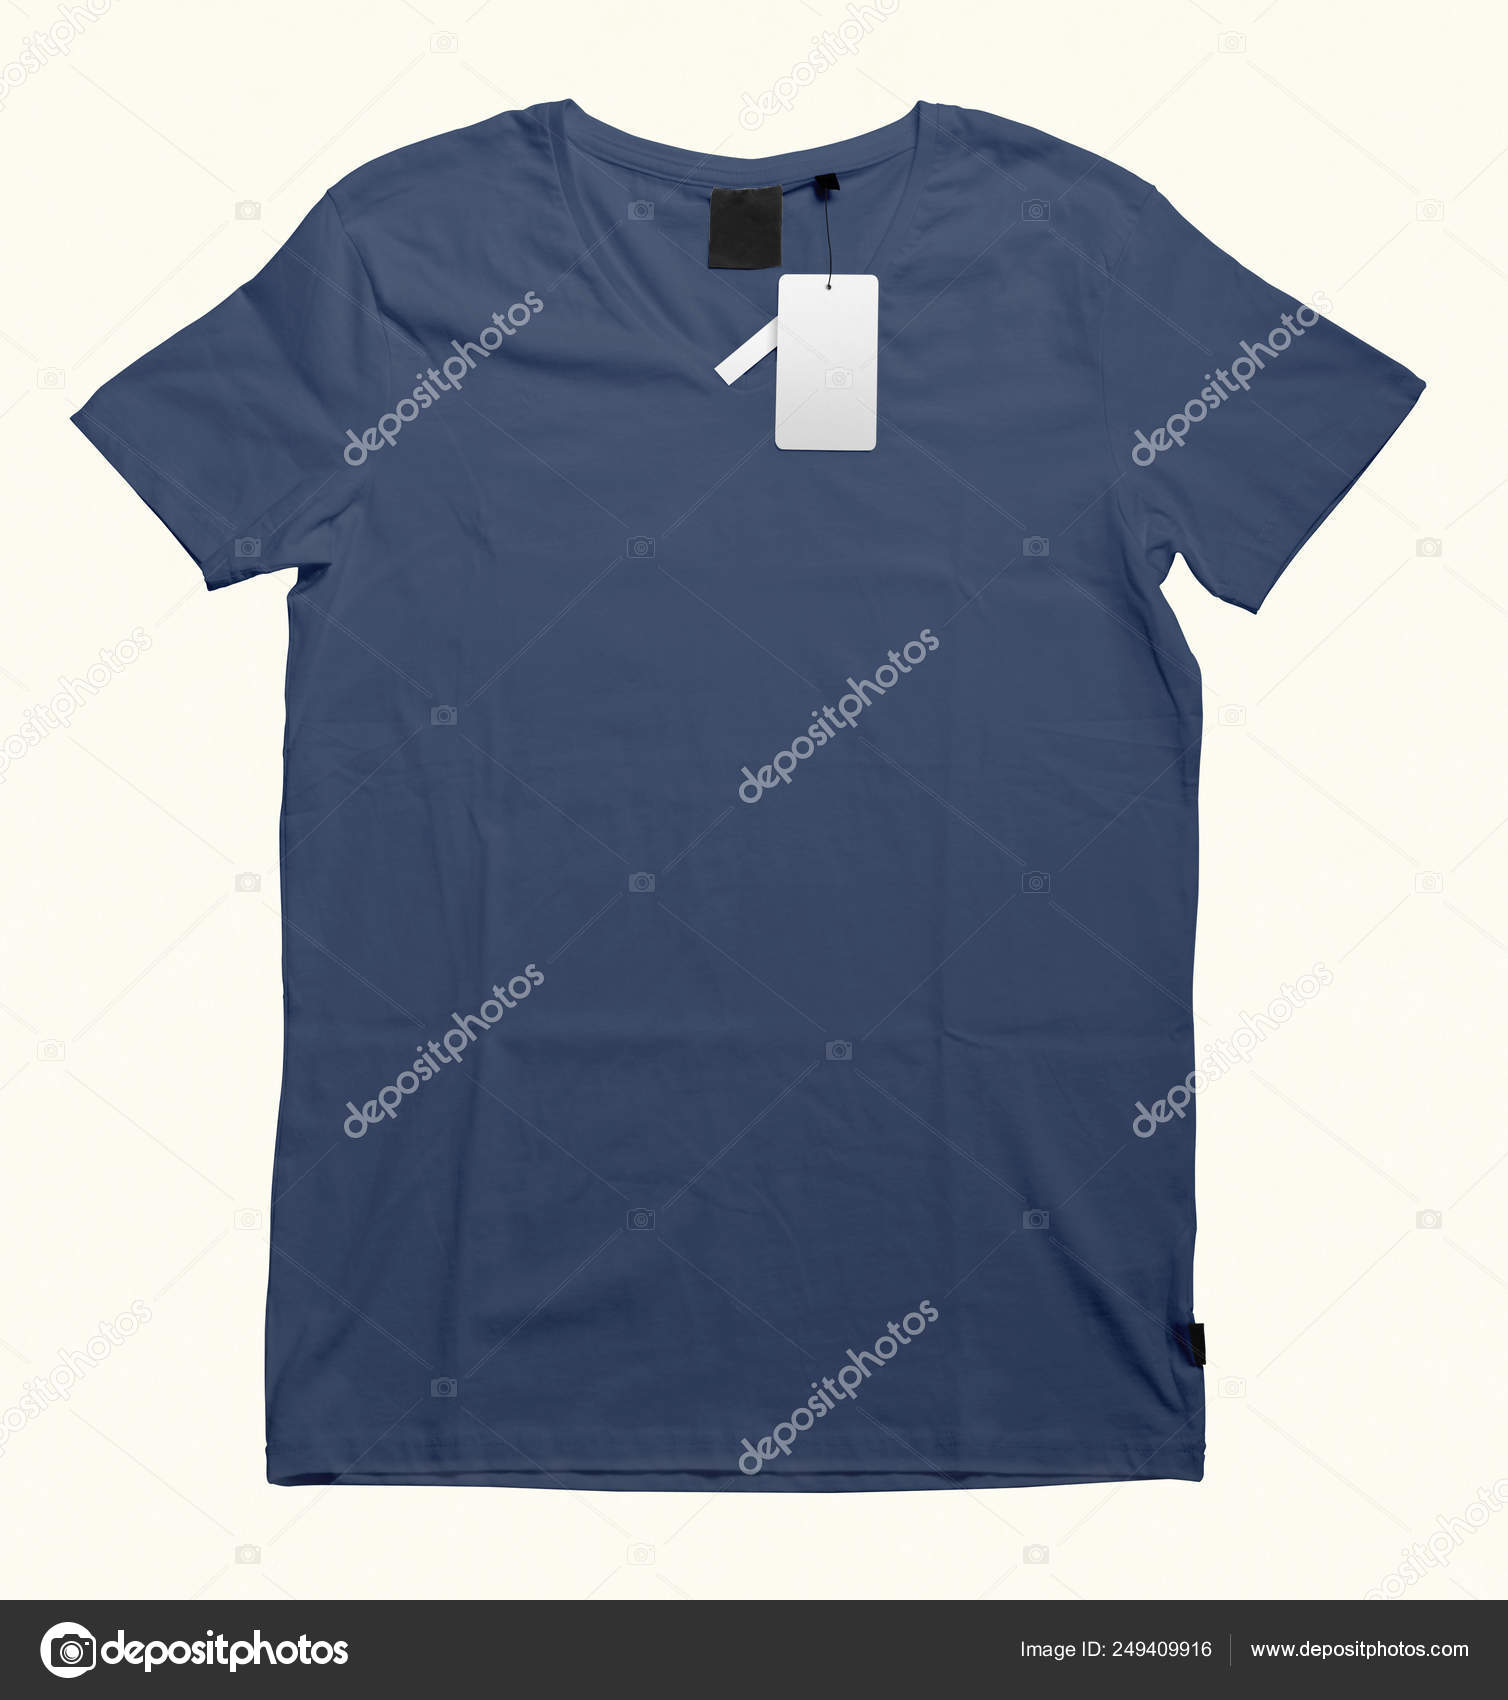 f68978d1e Free T Shirt Designs Templates - DREAMWORKS